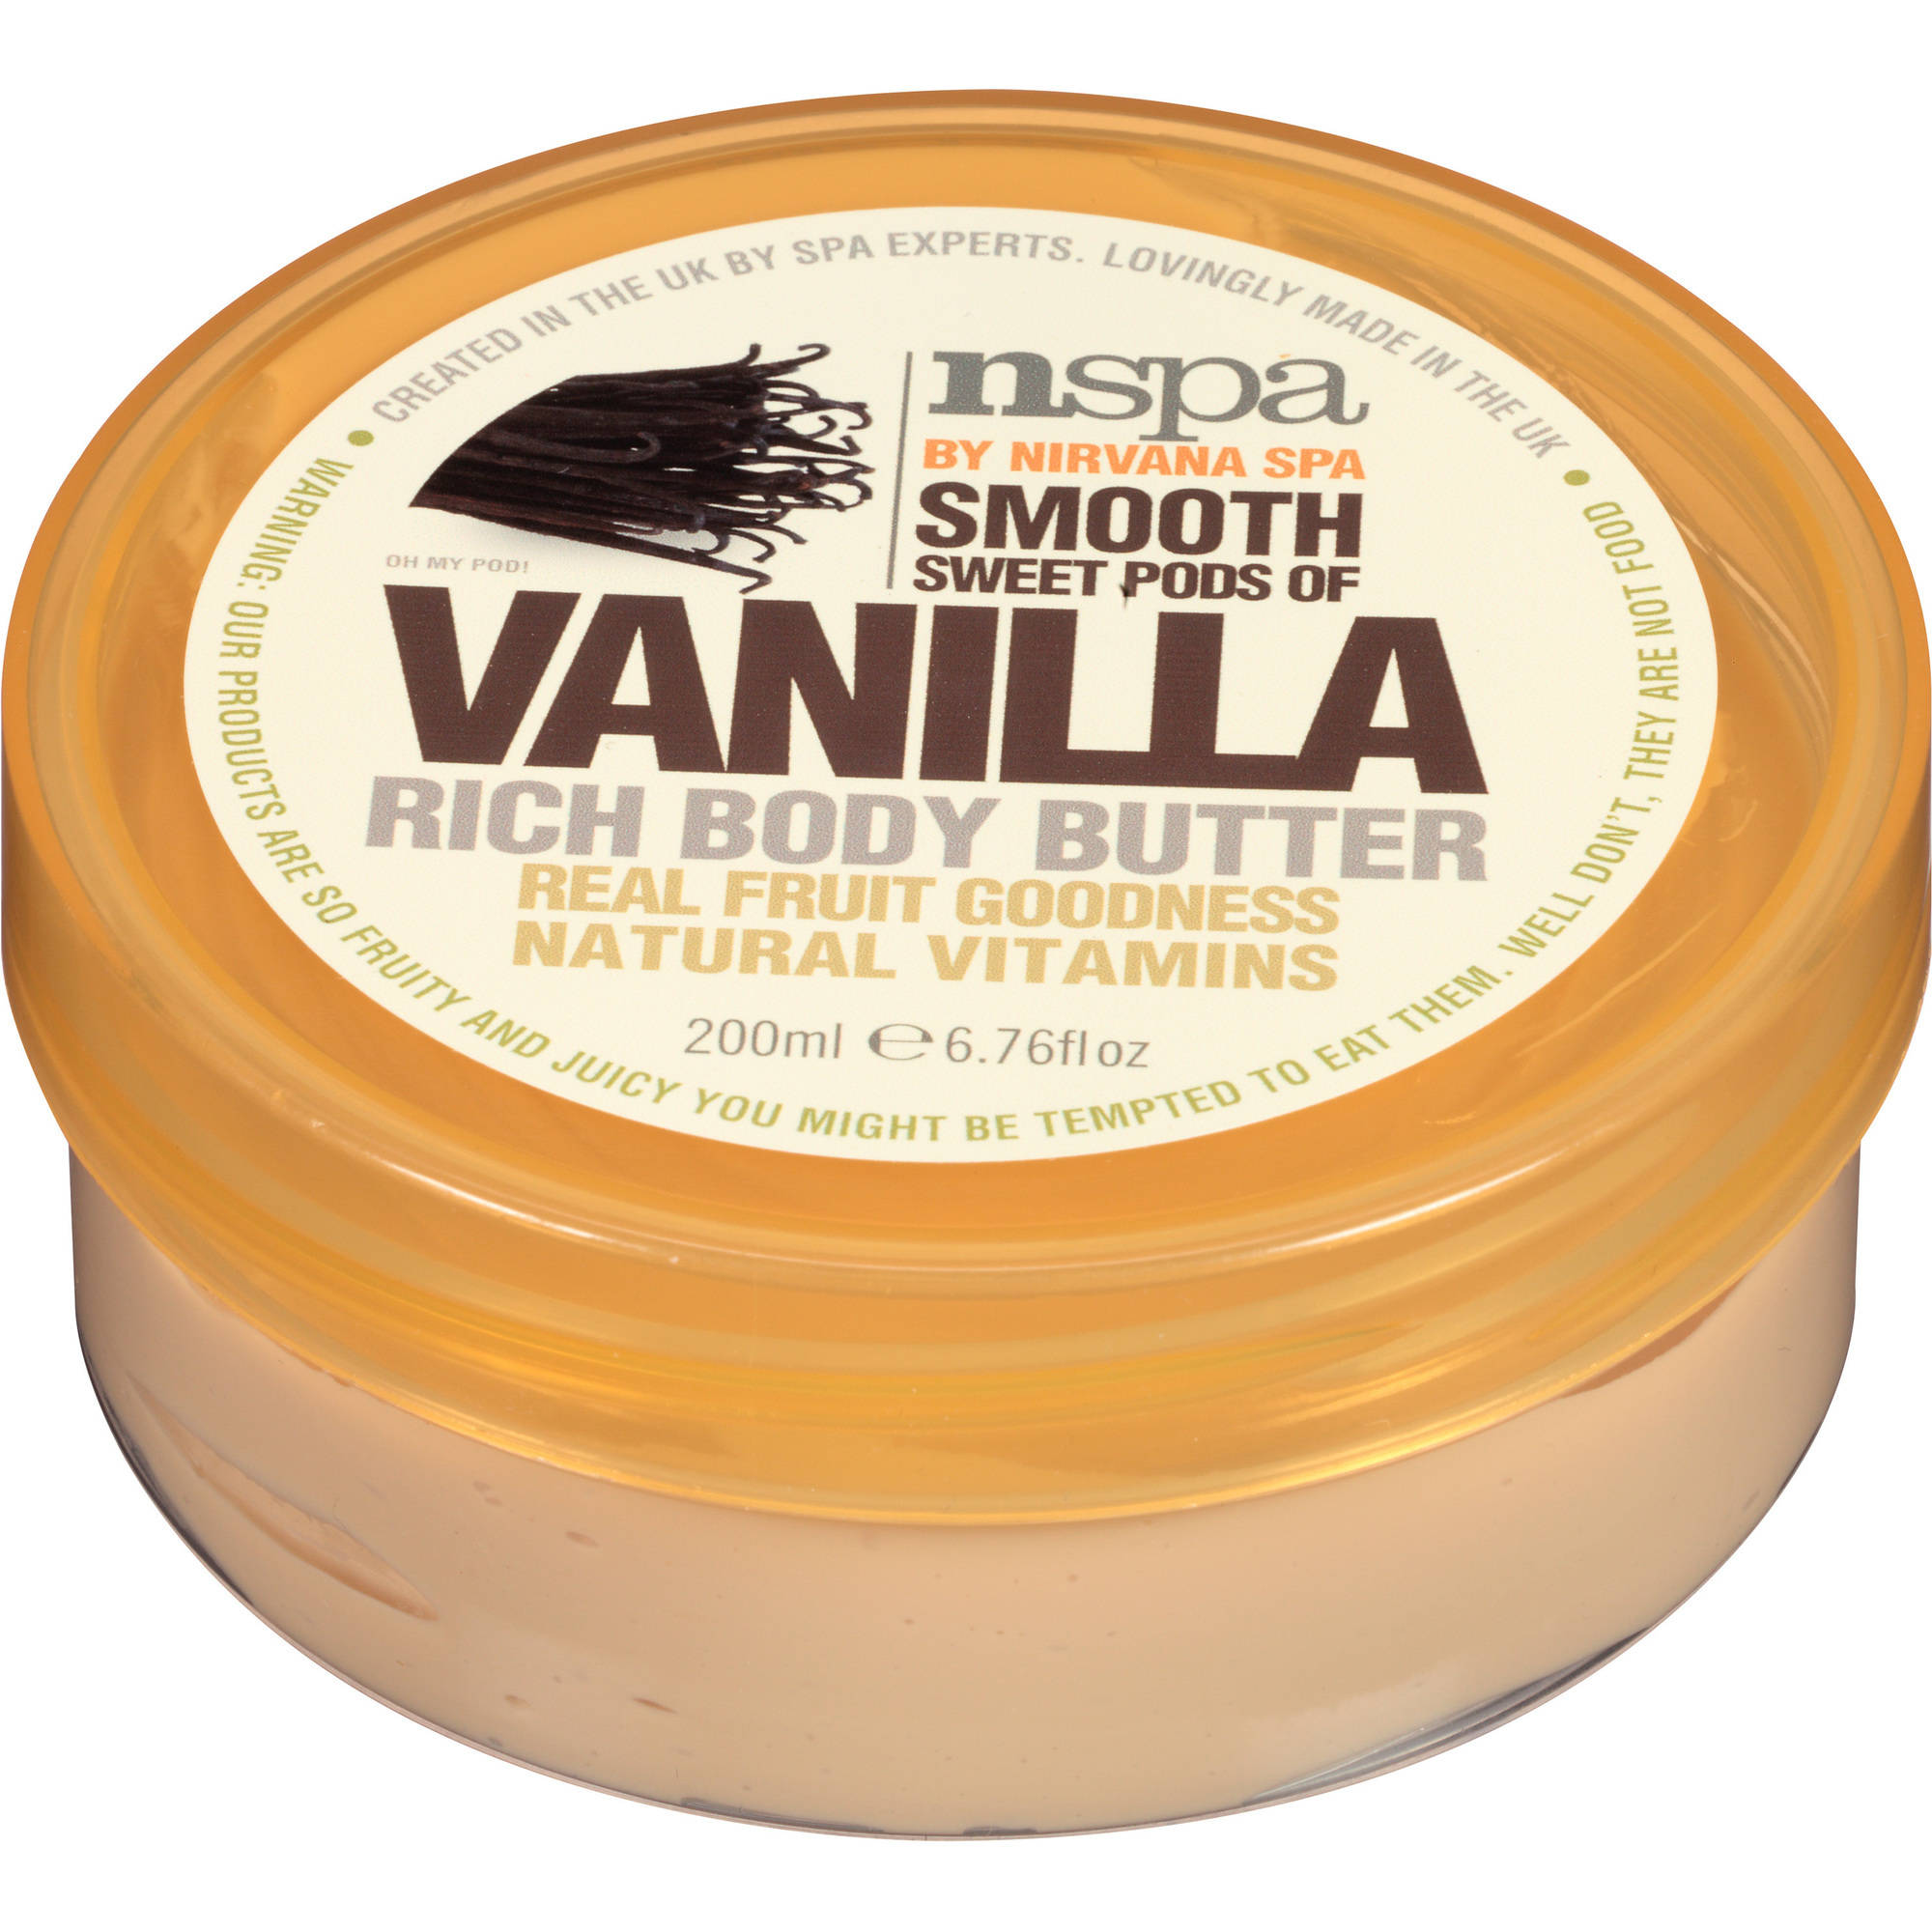 NSPA Smooth Sweet Pods of Vanilla Rich Body Butter, 6.76 fl oz